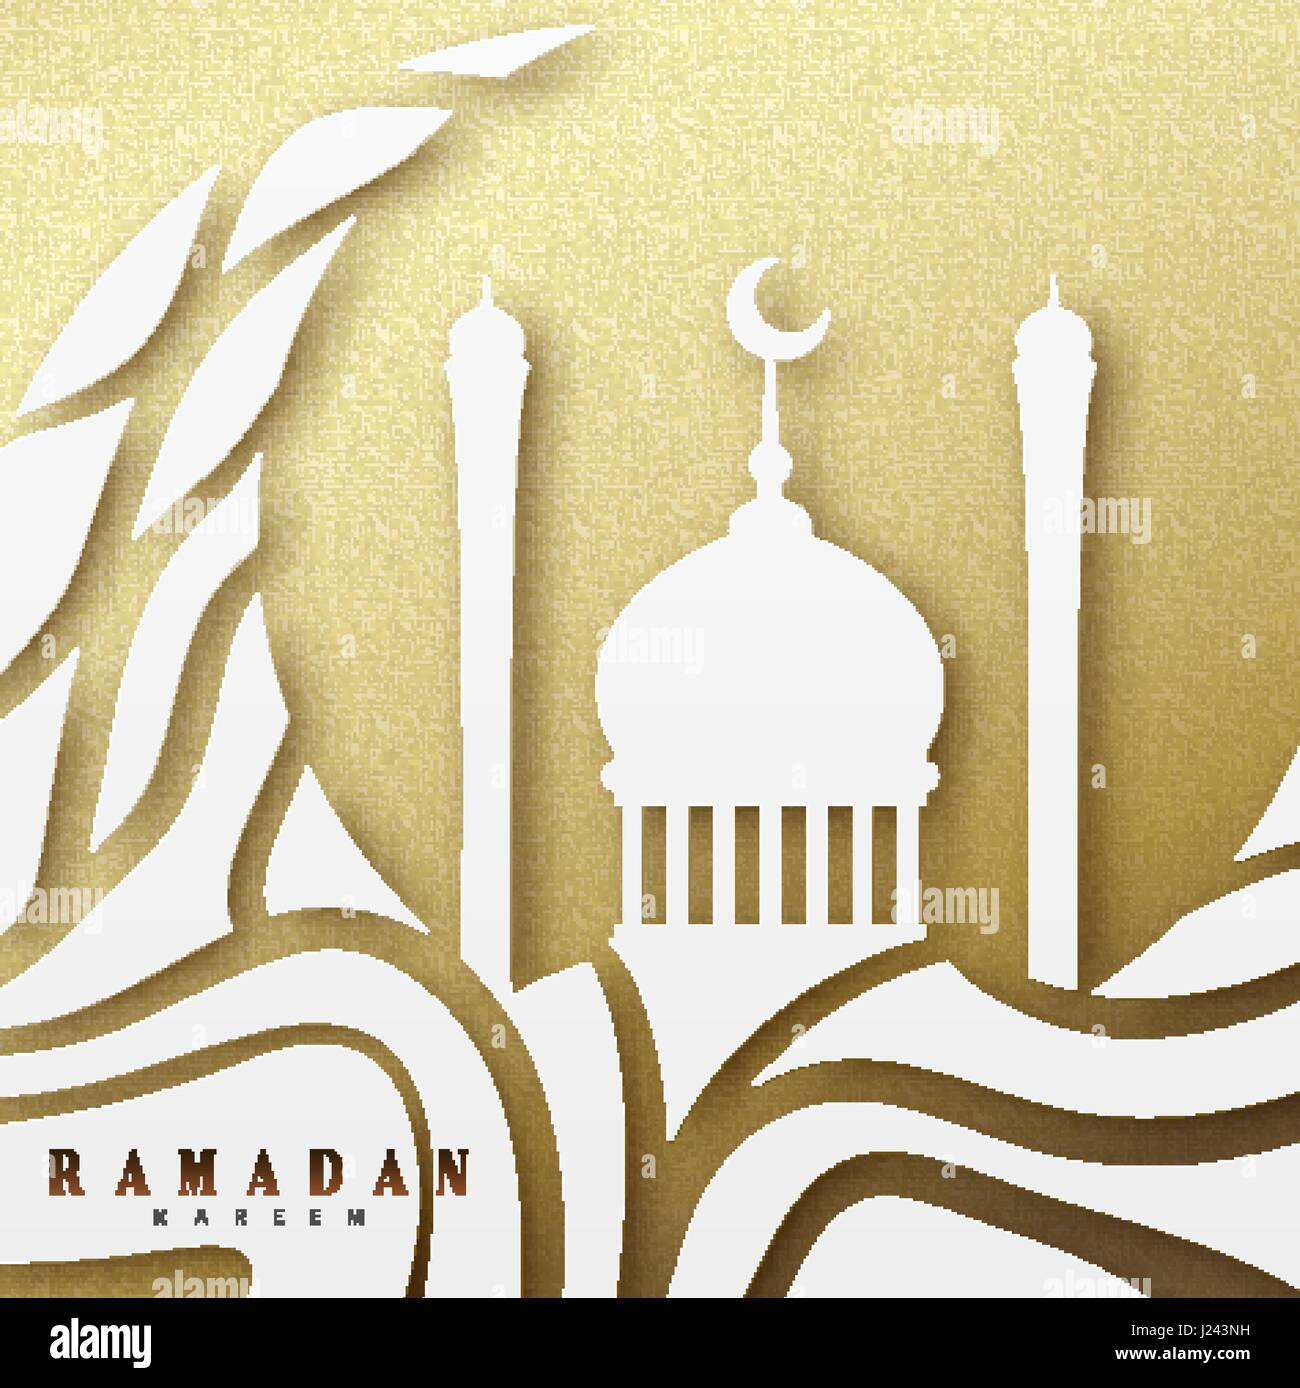 Ramadan greeting card with arabic calligraphy ramadan kareem ramadan greeting card with arabic calligraphy ramadan kareem islamic background with mosques m4hsunfo